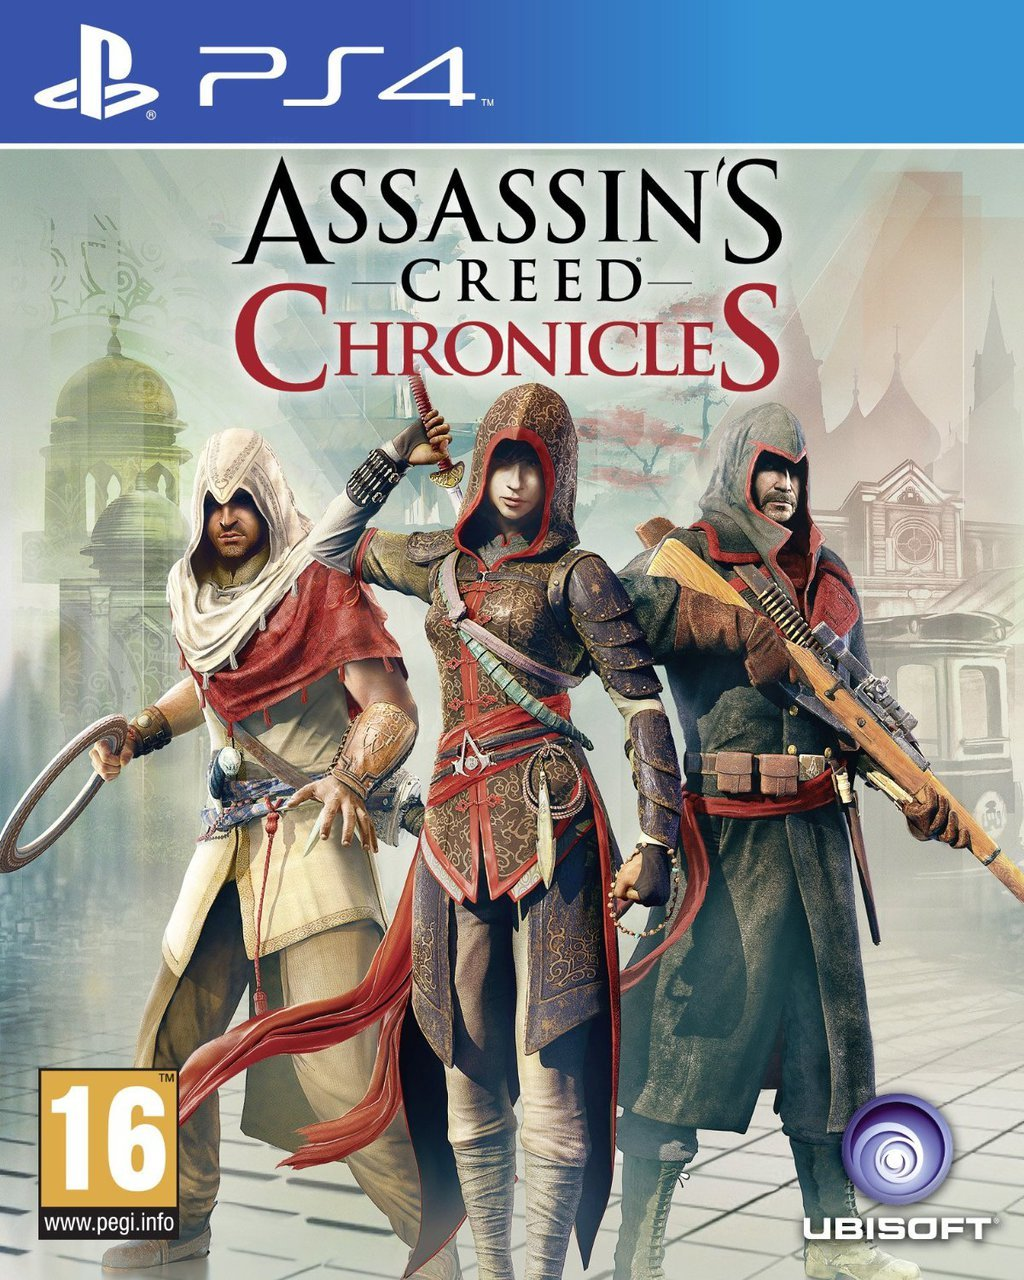 PS4 Games Download 2018: Assassin's Creed Chronicles PS4 (PKG)